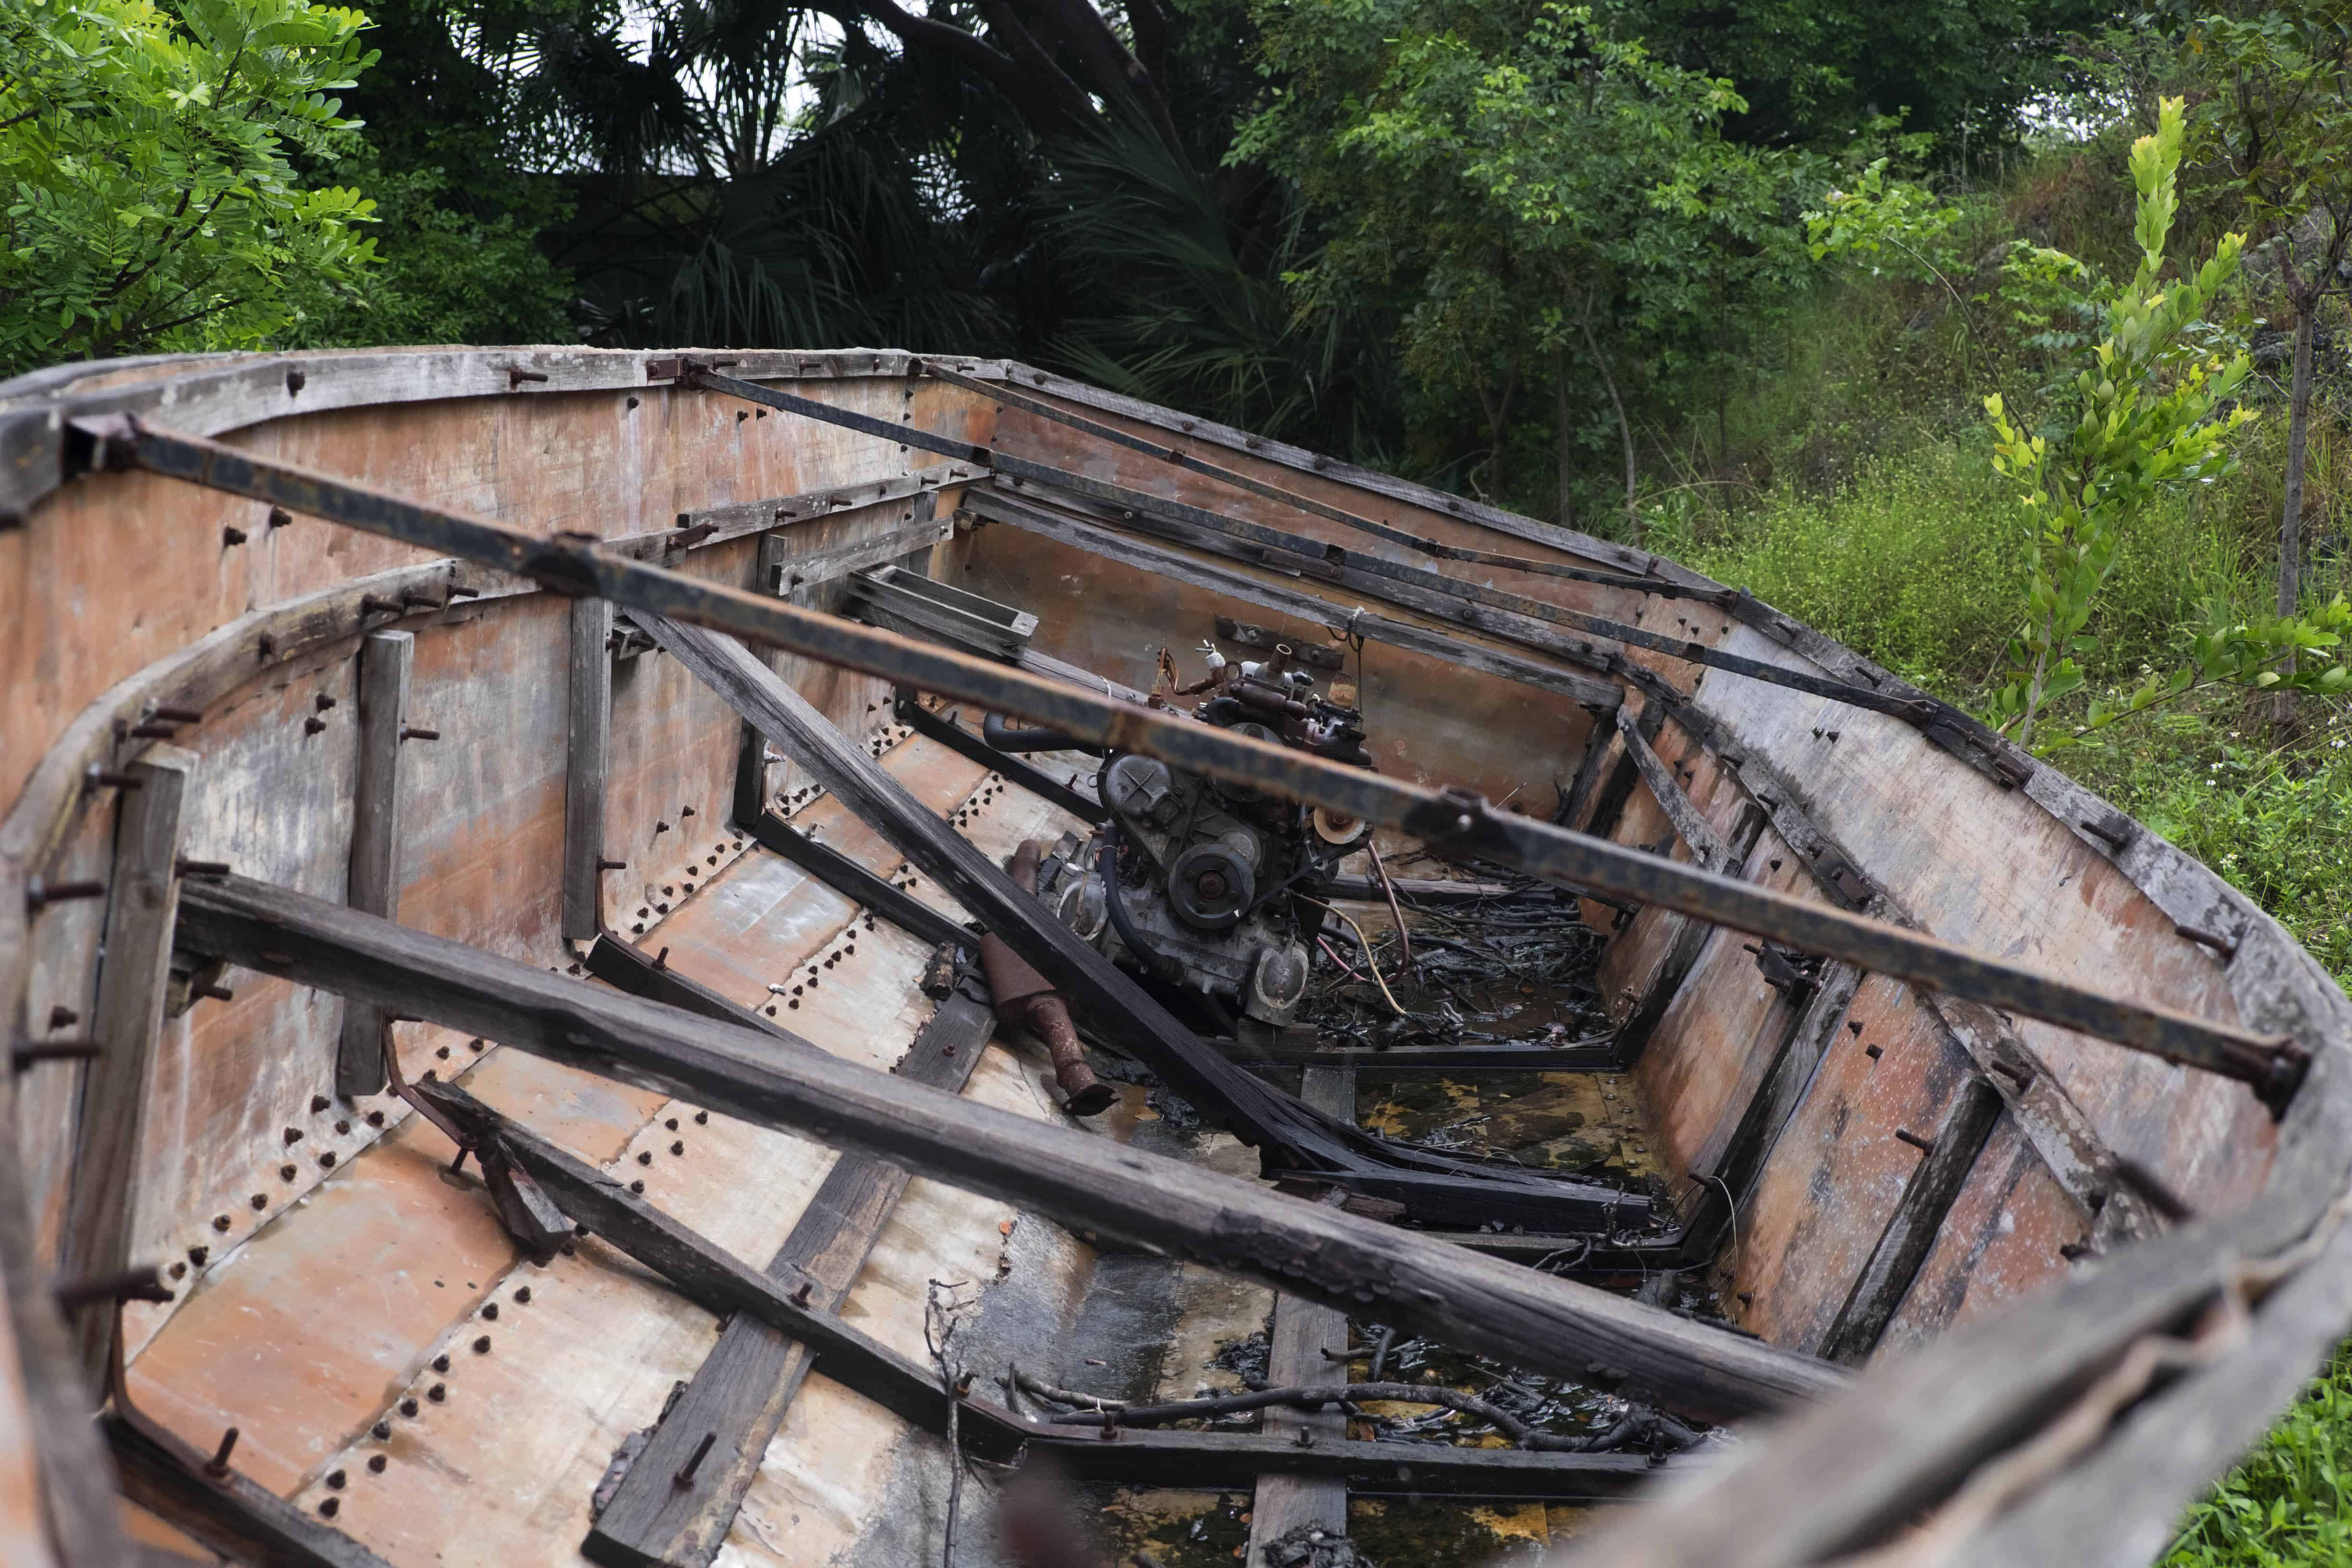 A boat used by Cuban immigrants on display at the Botanical Gardens in the Florida Keys.